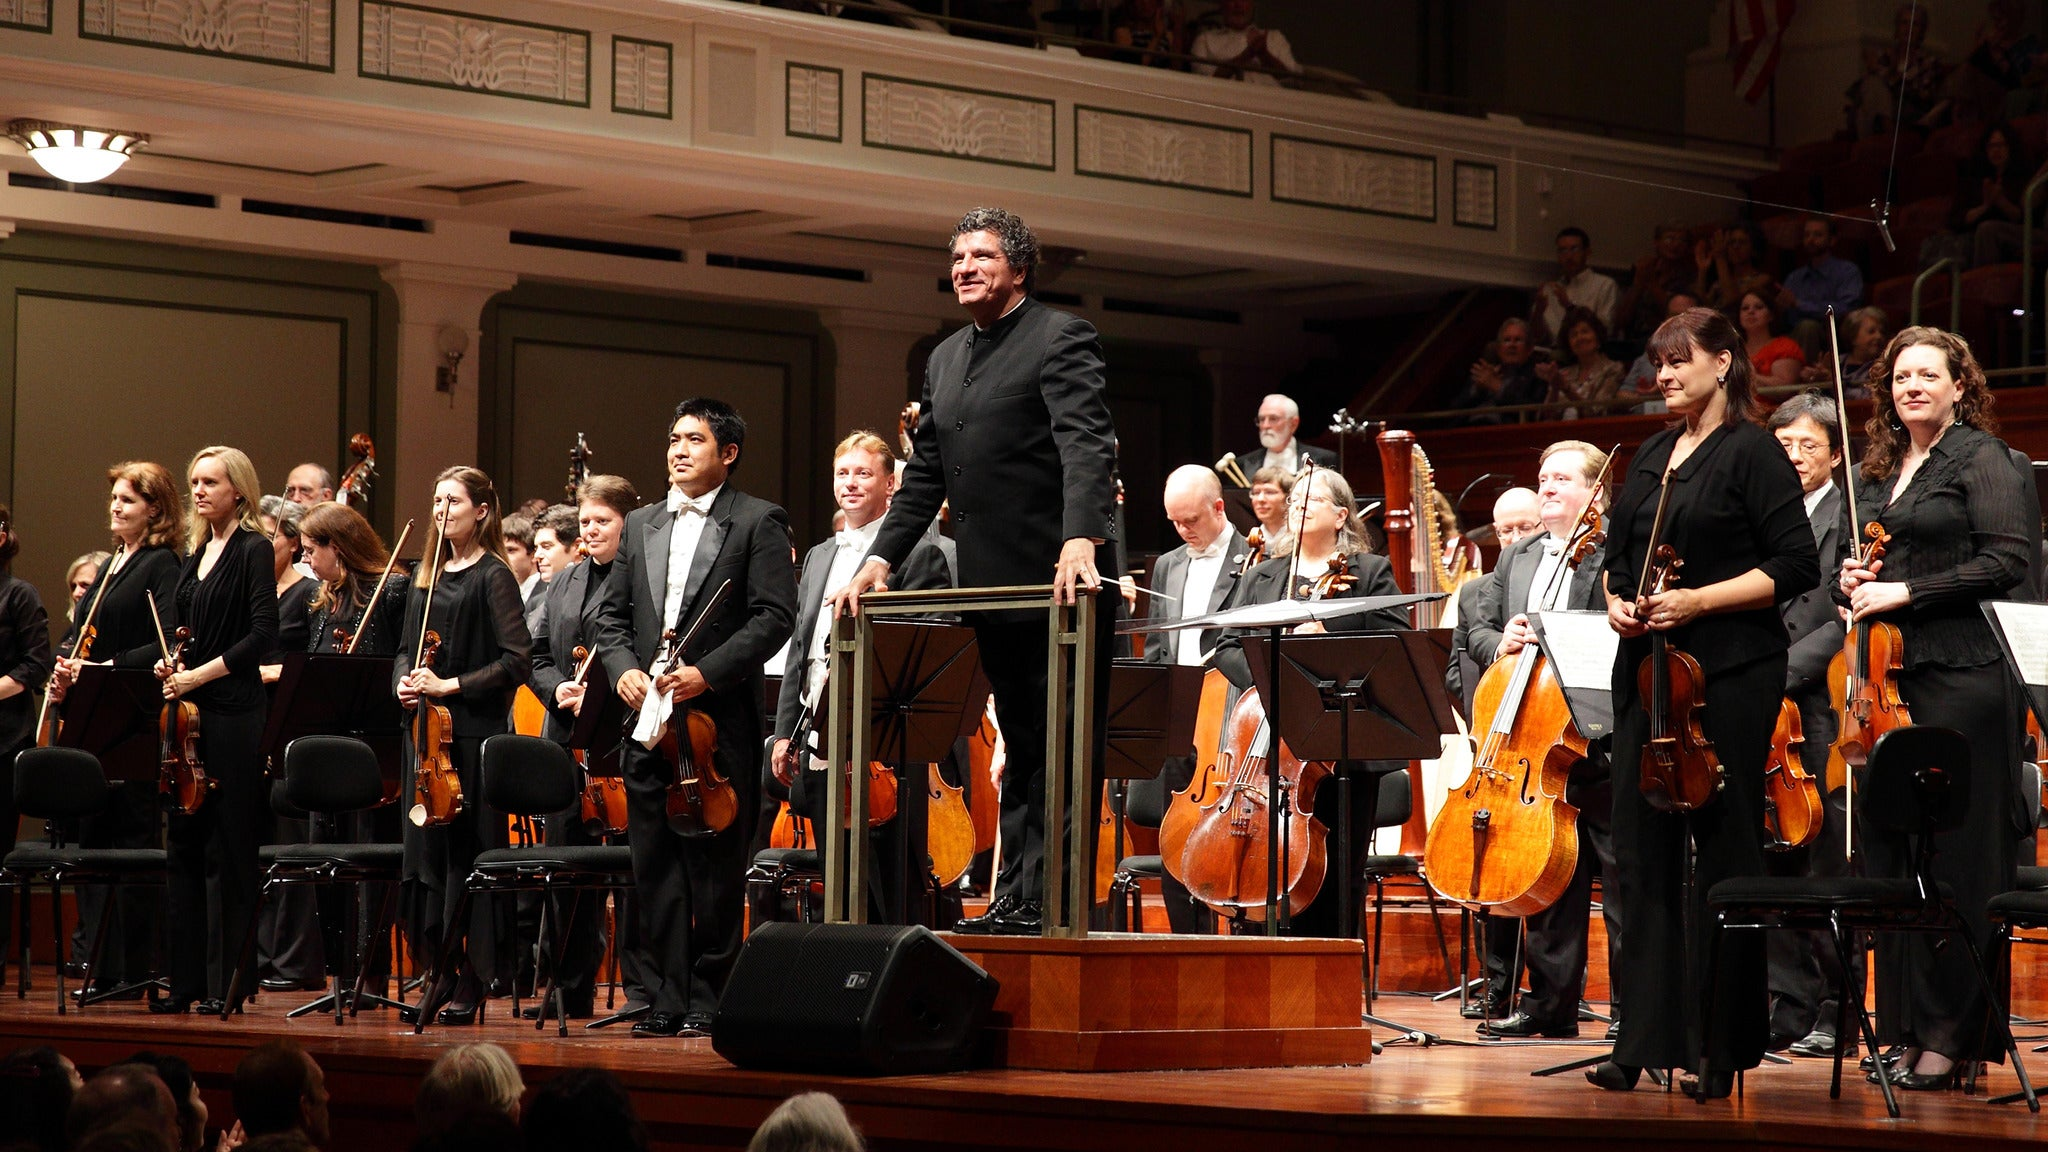 Mozart & Rachmaninoff at Schermerhorn Symphony Center